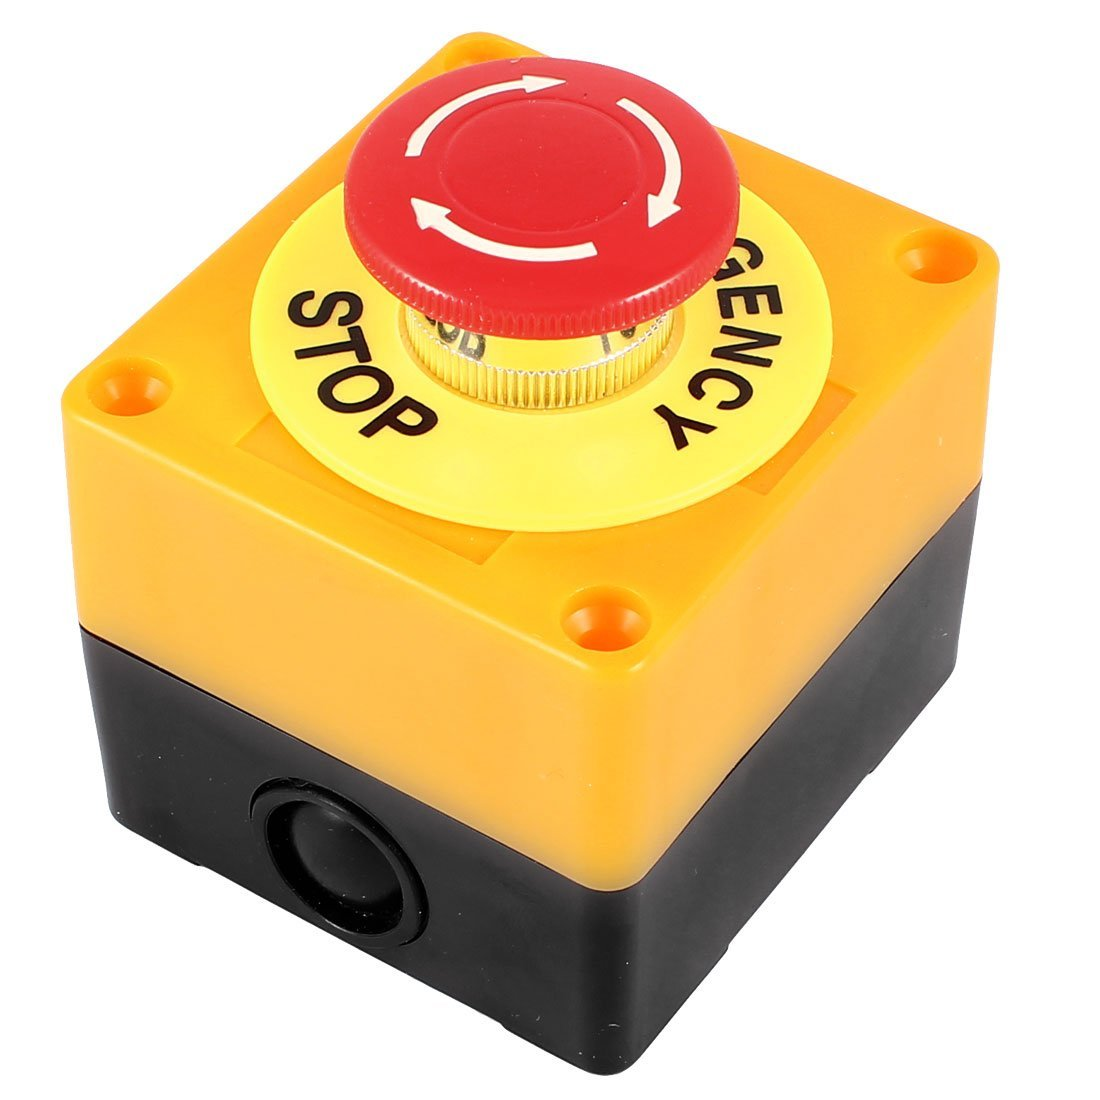 Push button AC 660V 10A Emergency stop plastic case Hard red switchPush button AC 660V 10A Emergency stop plastic case Hard red switch